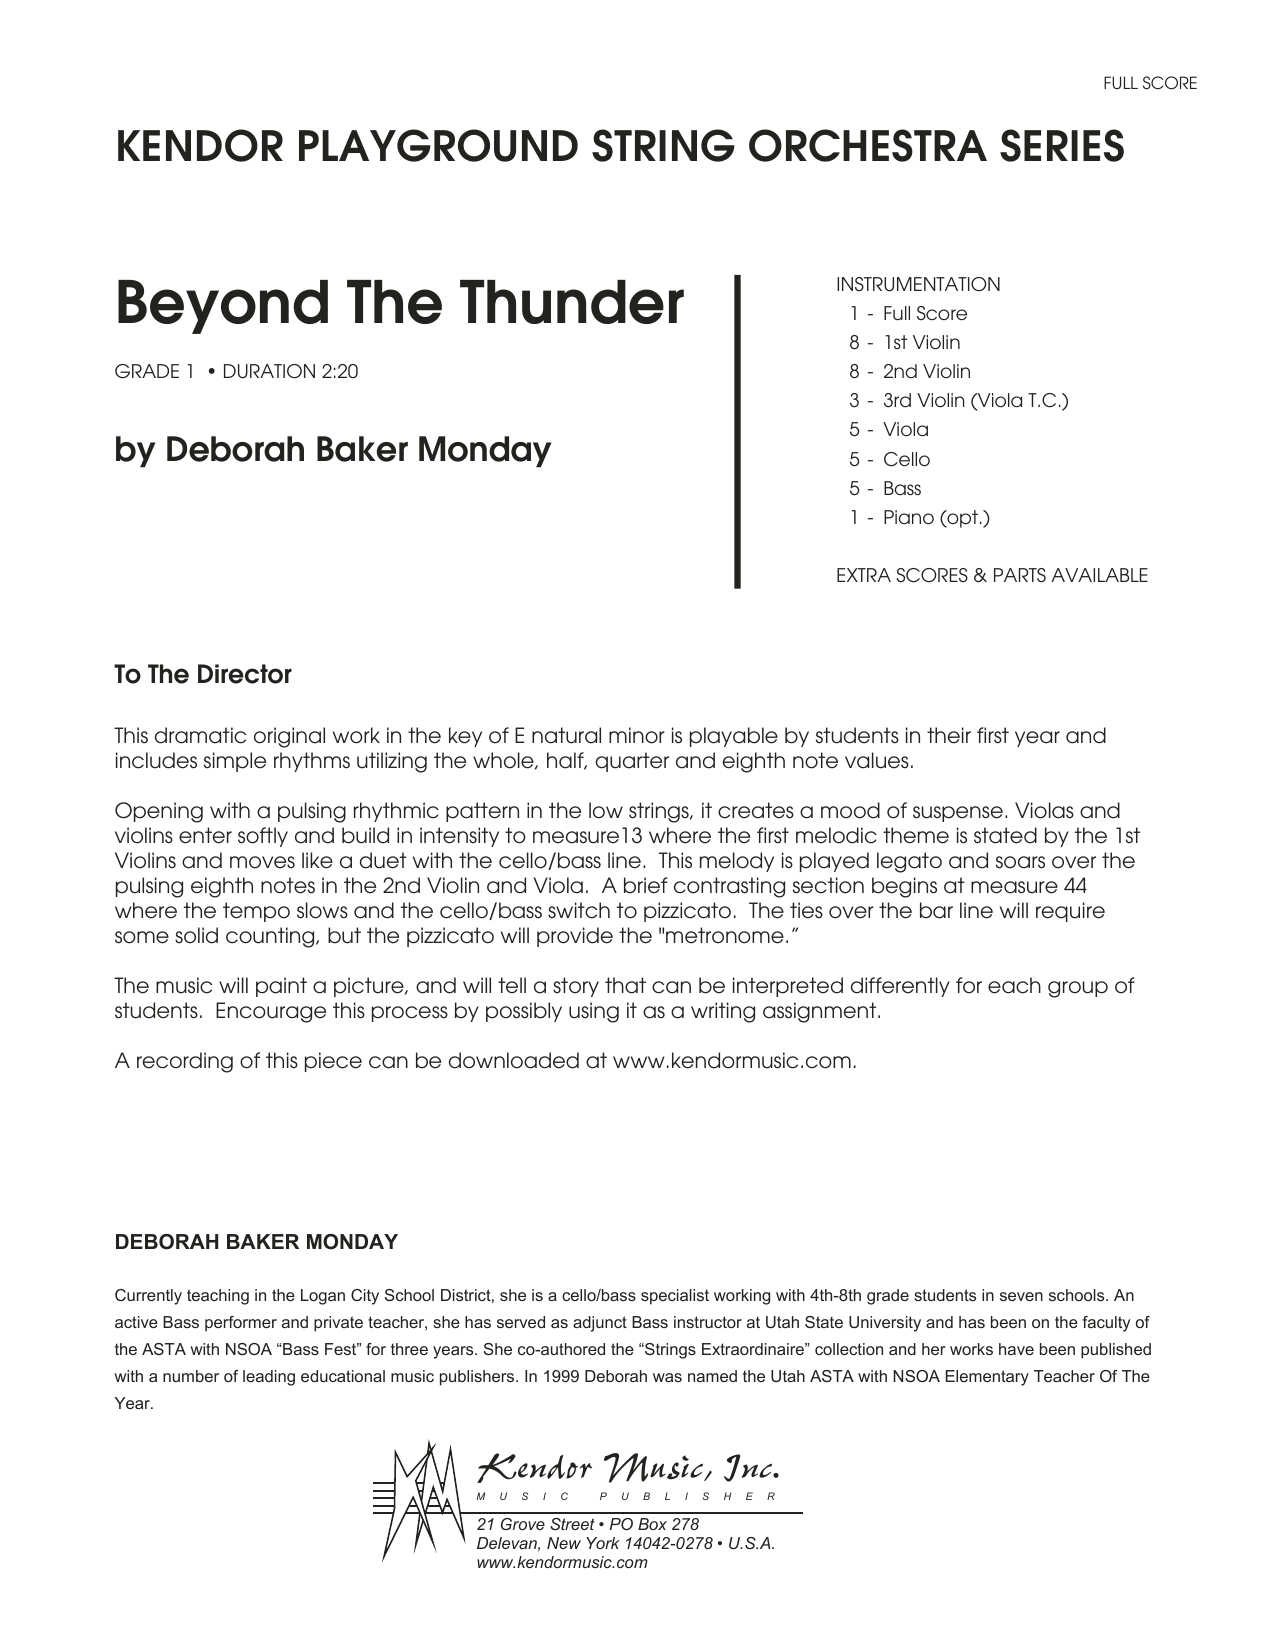 Beyond The Thunder (COMPLETE) sheet music for orchestra by Deborah Baker Monday. Score Image Preview.